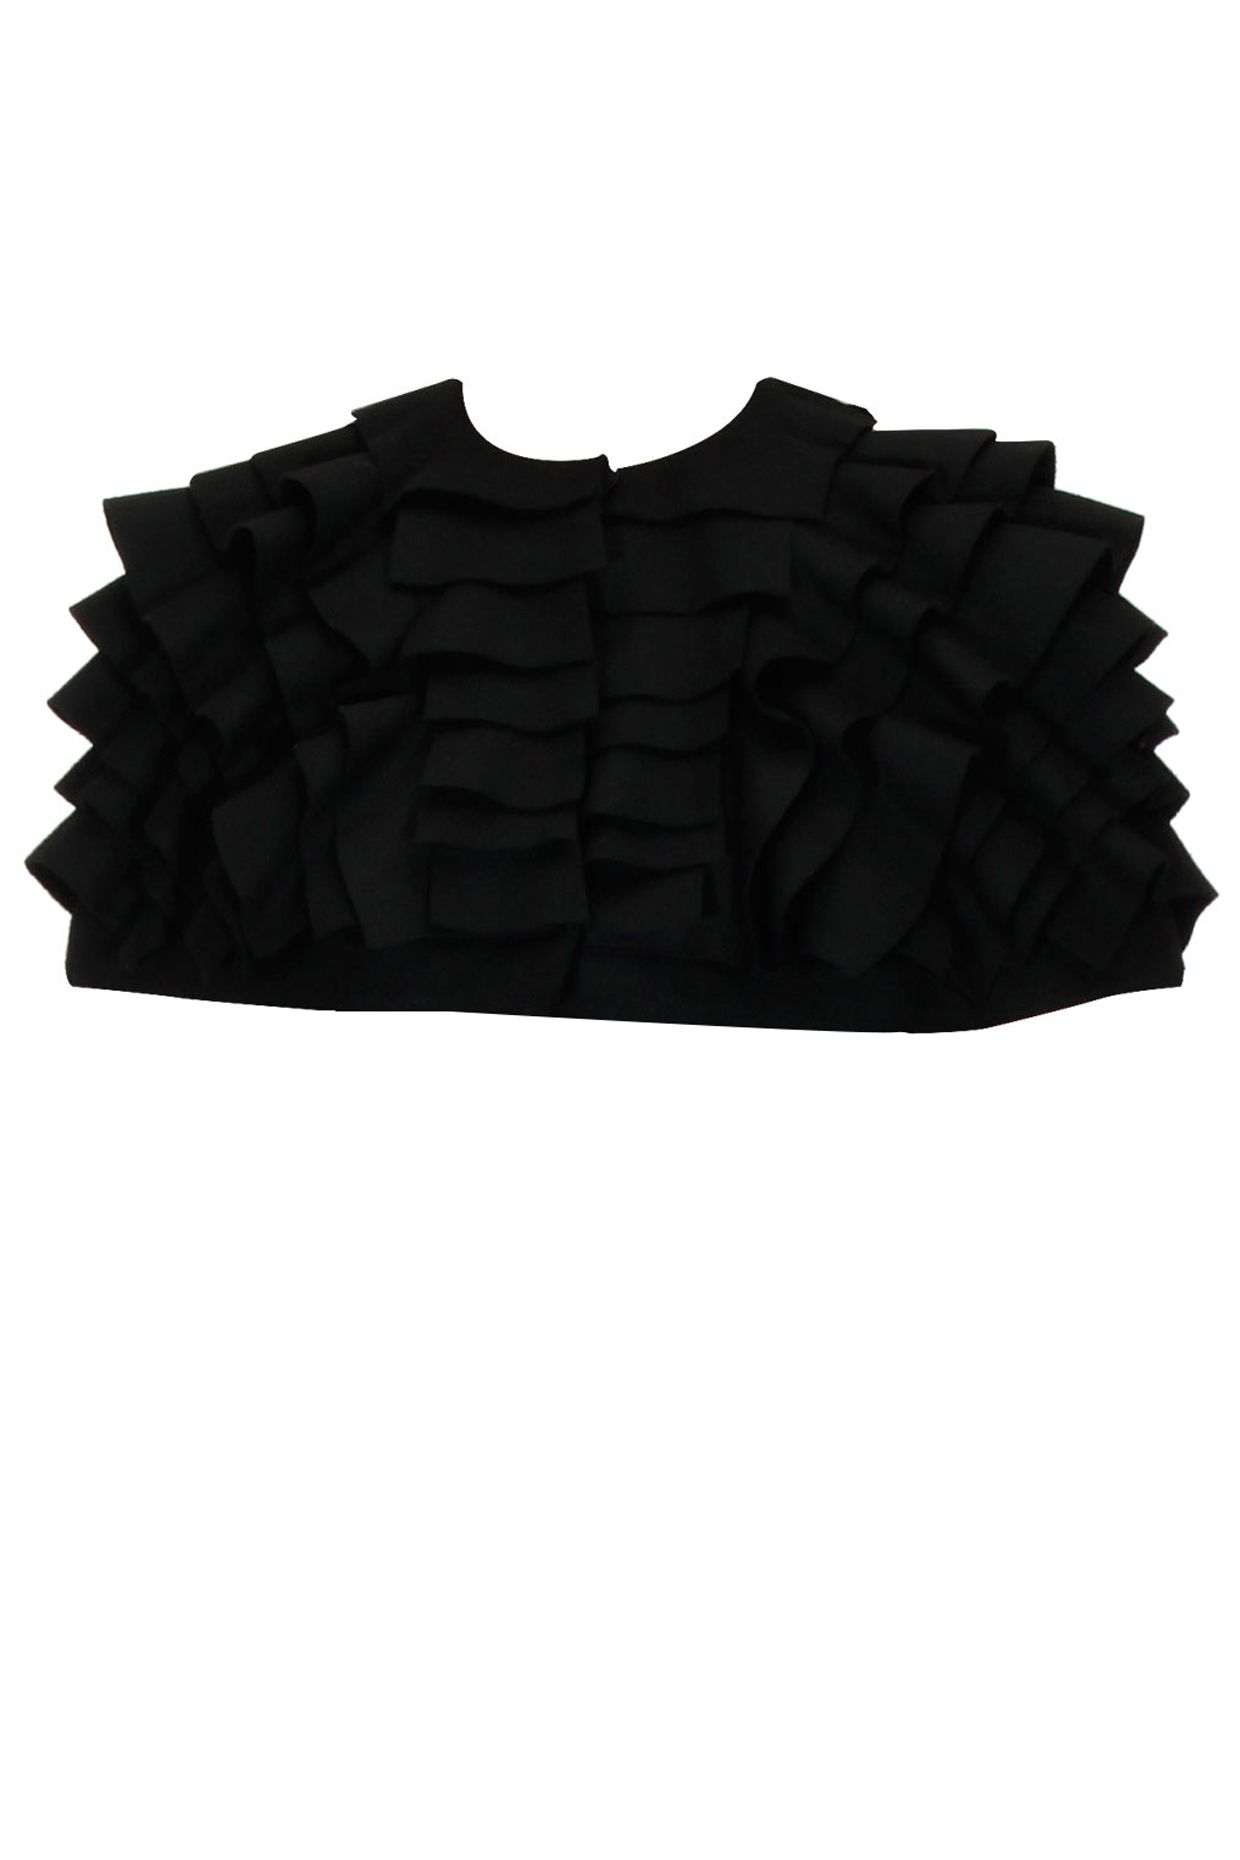 Black frilled short woolen cape available only at Pernia's Pop Up Shop.